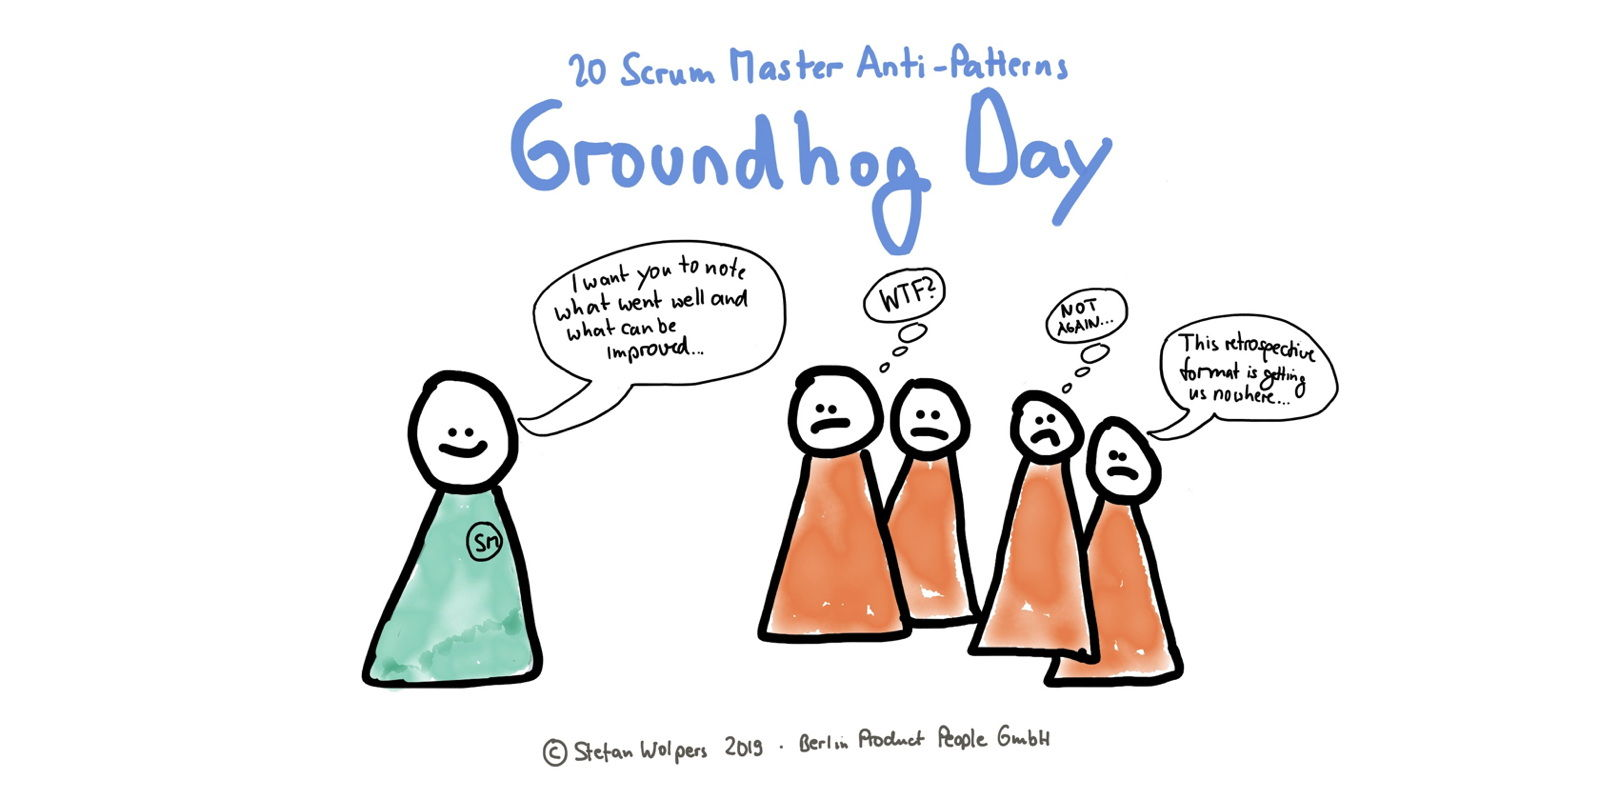 Scrum Master Anti-Patterns — Groundhog Day